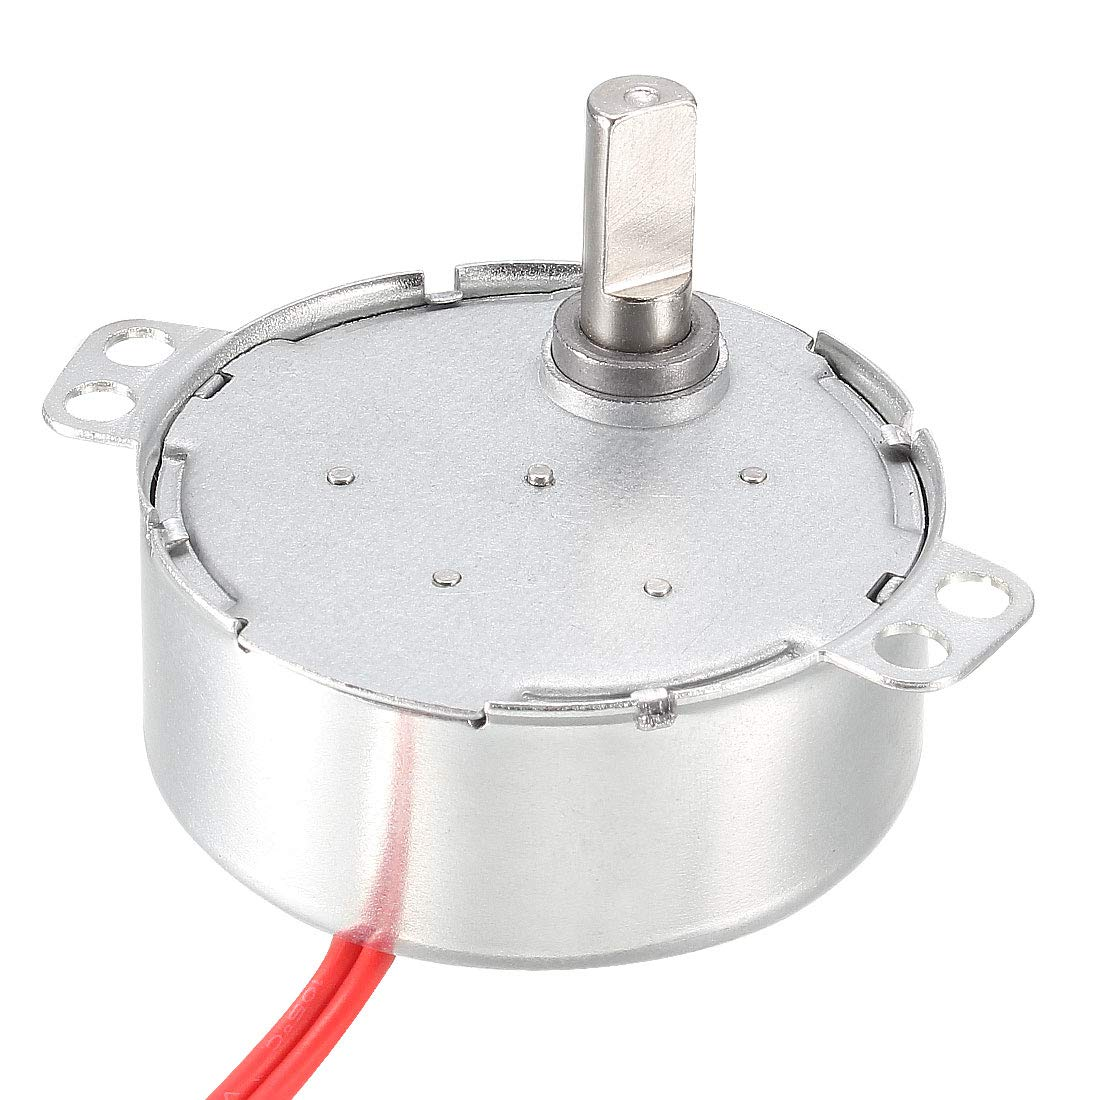 uxcell Synchronous Synchron Motor AC 24V 4W 5-6RPM/MIN 50-60Hz CW for Hand-Made, Model or Guide Motor